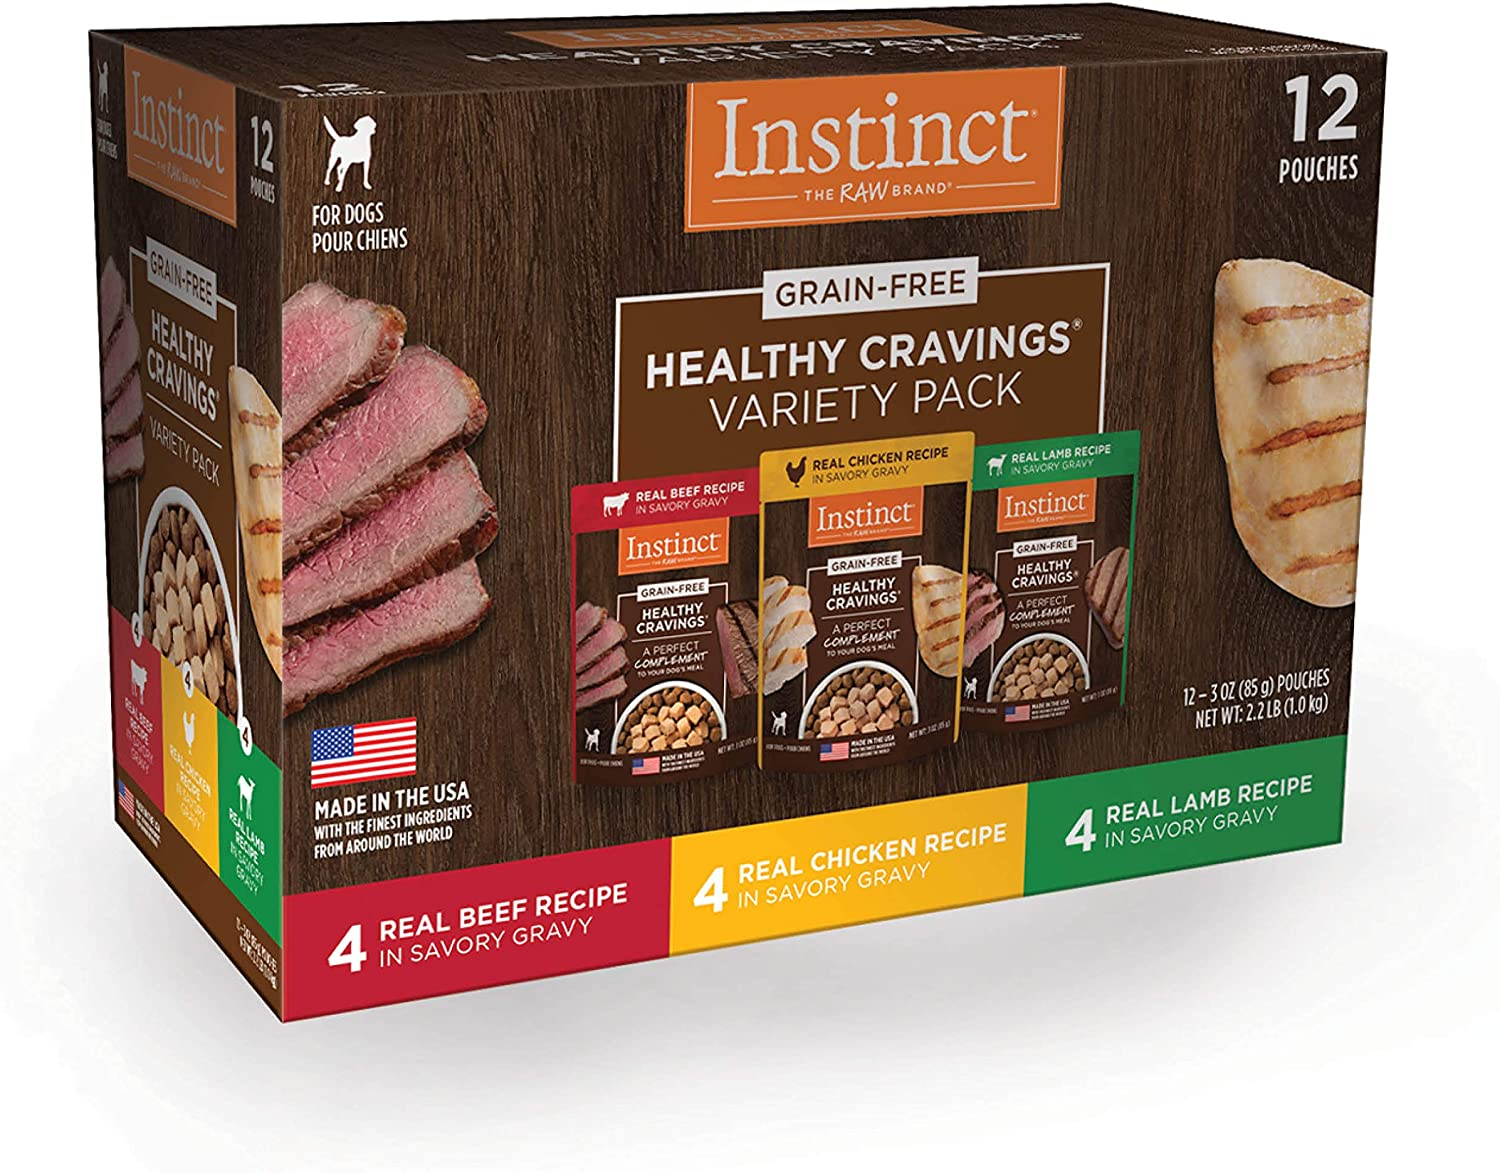 Instinct Healthy Cravings Grain Free Recipe Variety Pack Natural Wet Dog Food Topper by Nature's Variety, 3 oz. Pouches (Pack of 12)